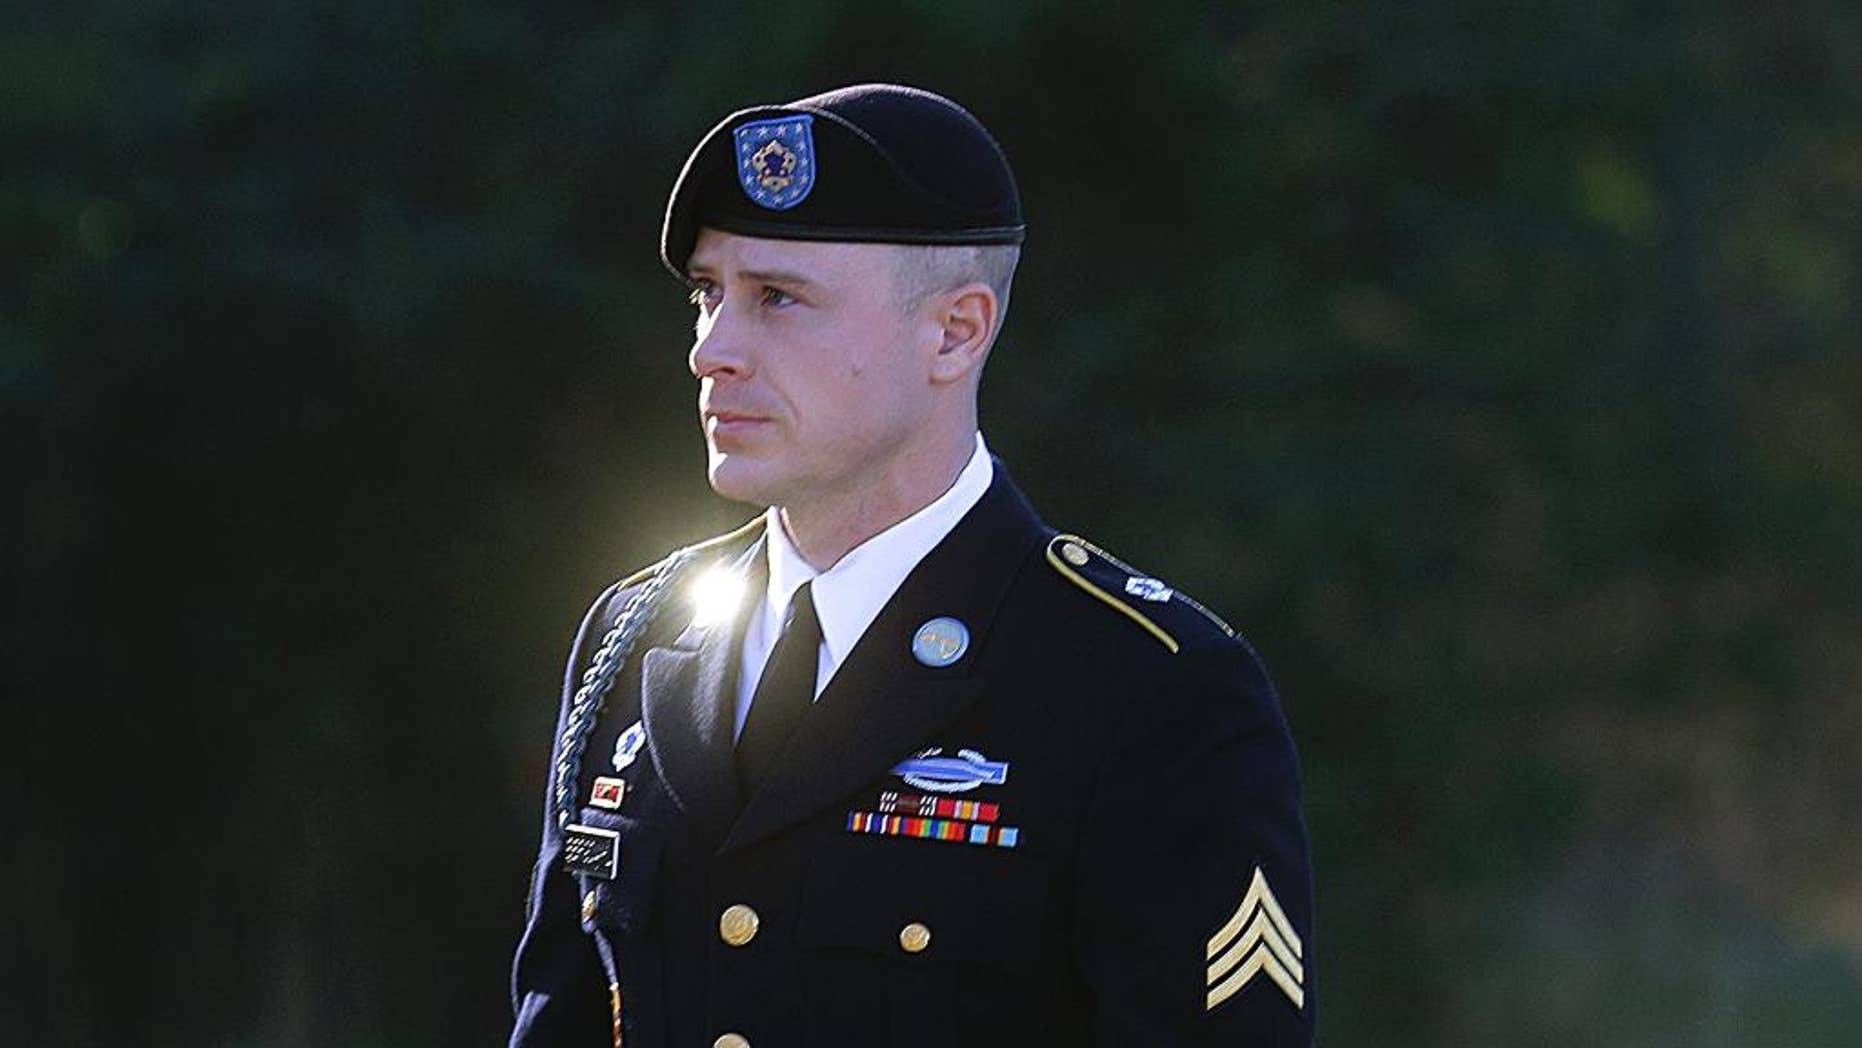 """A three-judge Army Court of Criminal Appeals panel rejected the argument, 2-1, that President Trump's tweets and public statements interfered with a fair trial for former Army Pvt. Bowe Bergdahl, who was captured by the Taliban and held for five years, Army Times reported.<br data-cke-eol=""""1""""> (AP Photo/Ted Richardson, File)"""